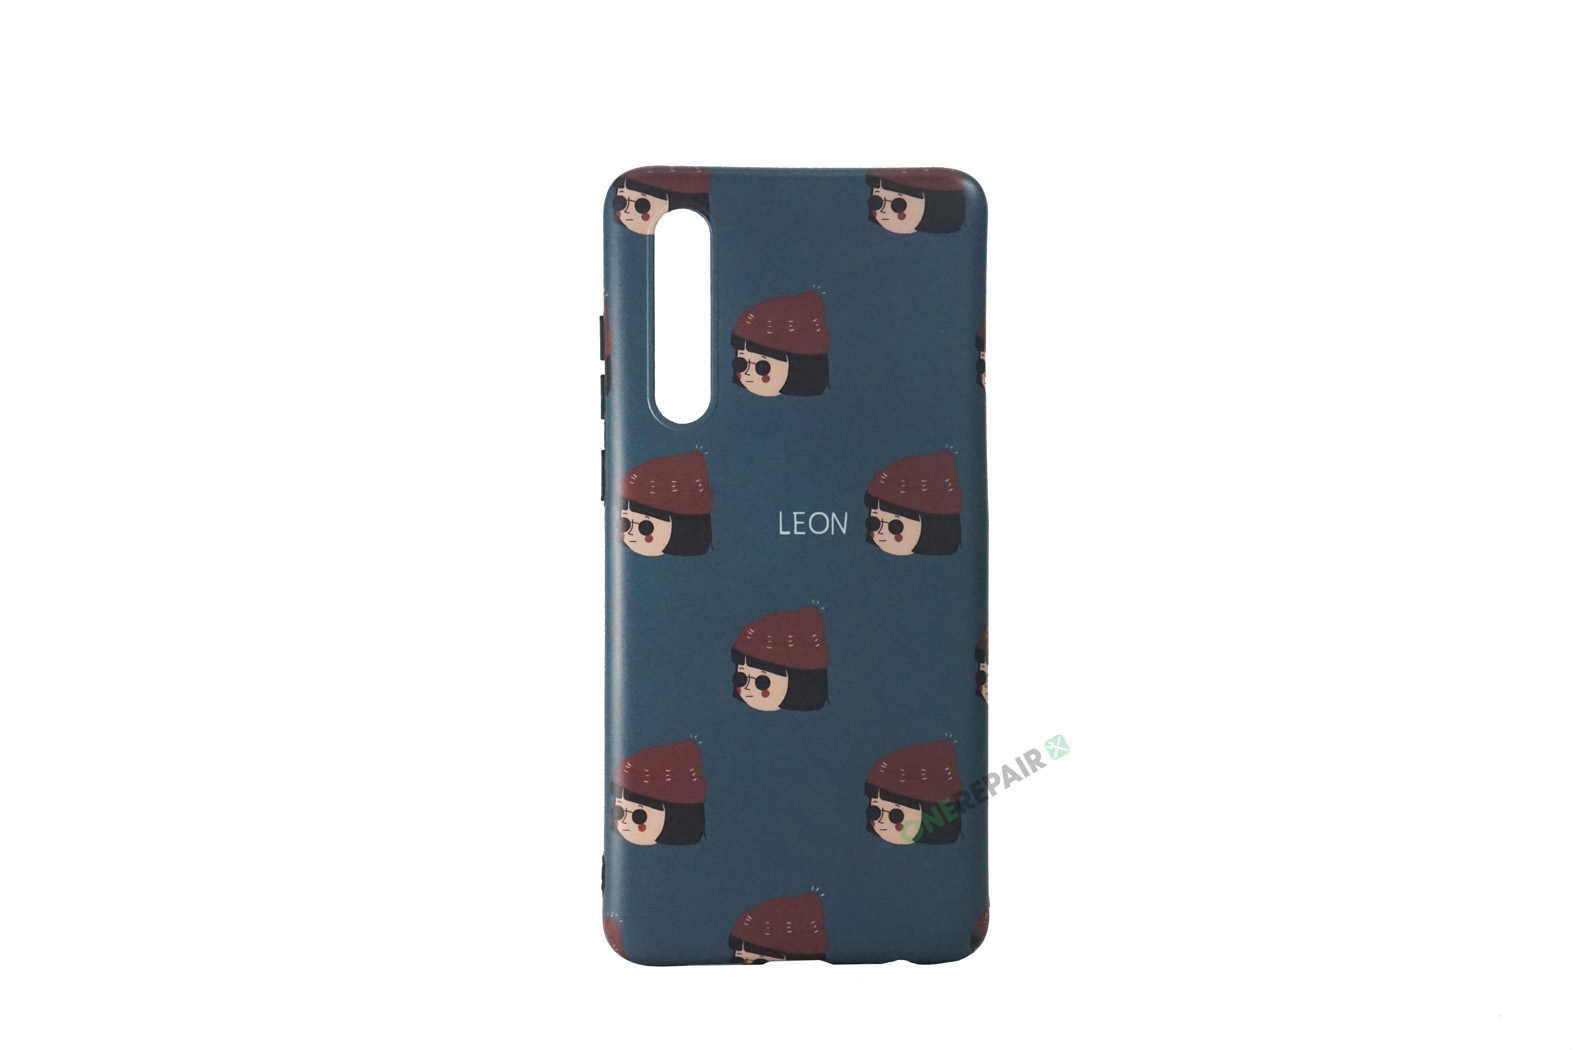 Huawei P30, Cover, Hipsterpige, Leon the Professional, Mathilde